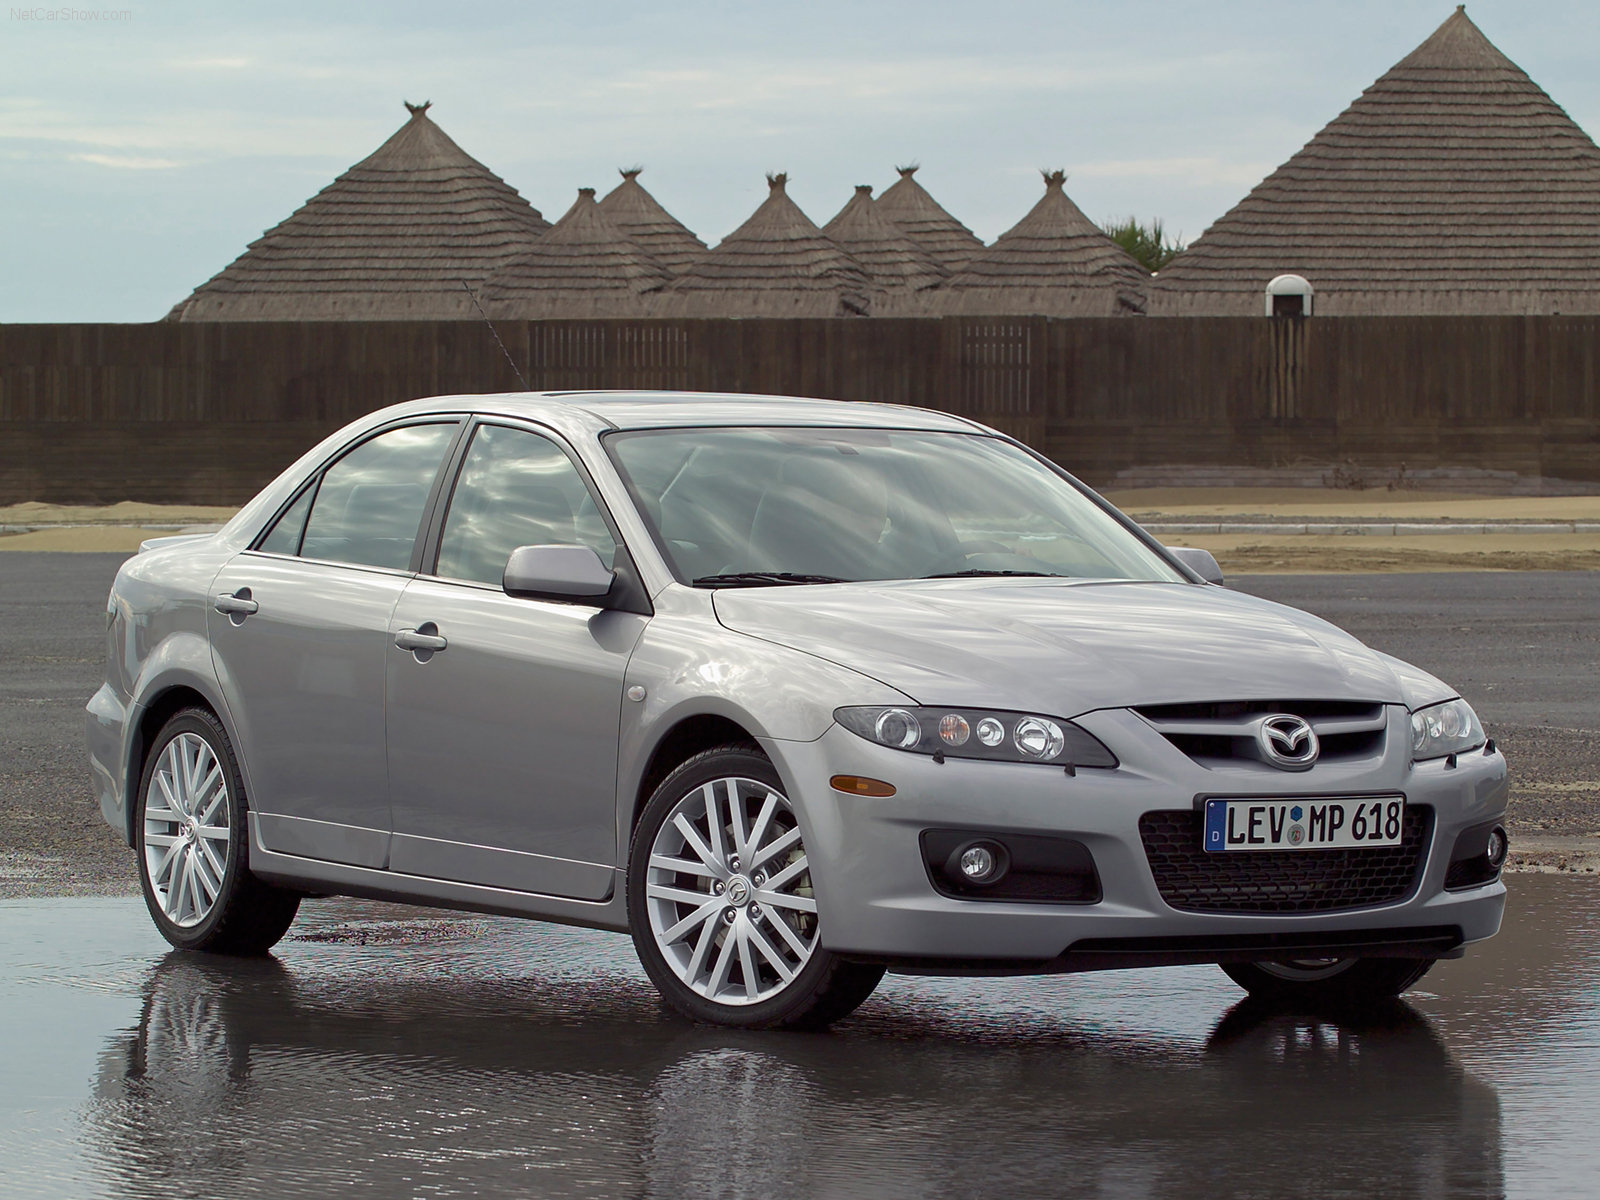 mazda 6 mps photos photogallery with 50 pics. Black Bedroom Furniture Sets. Home Design Ideas